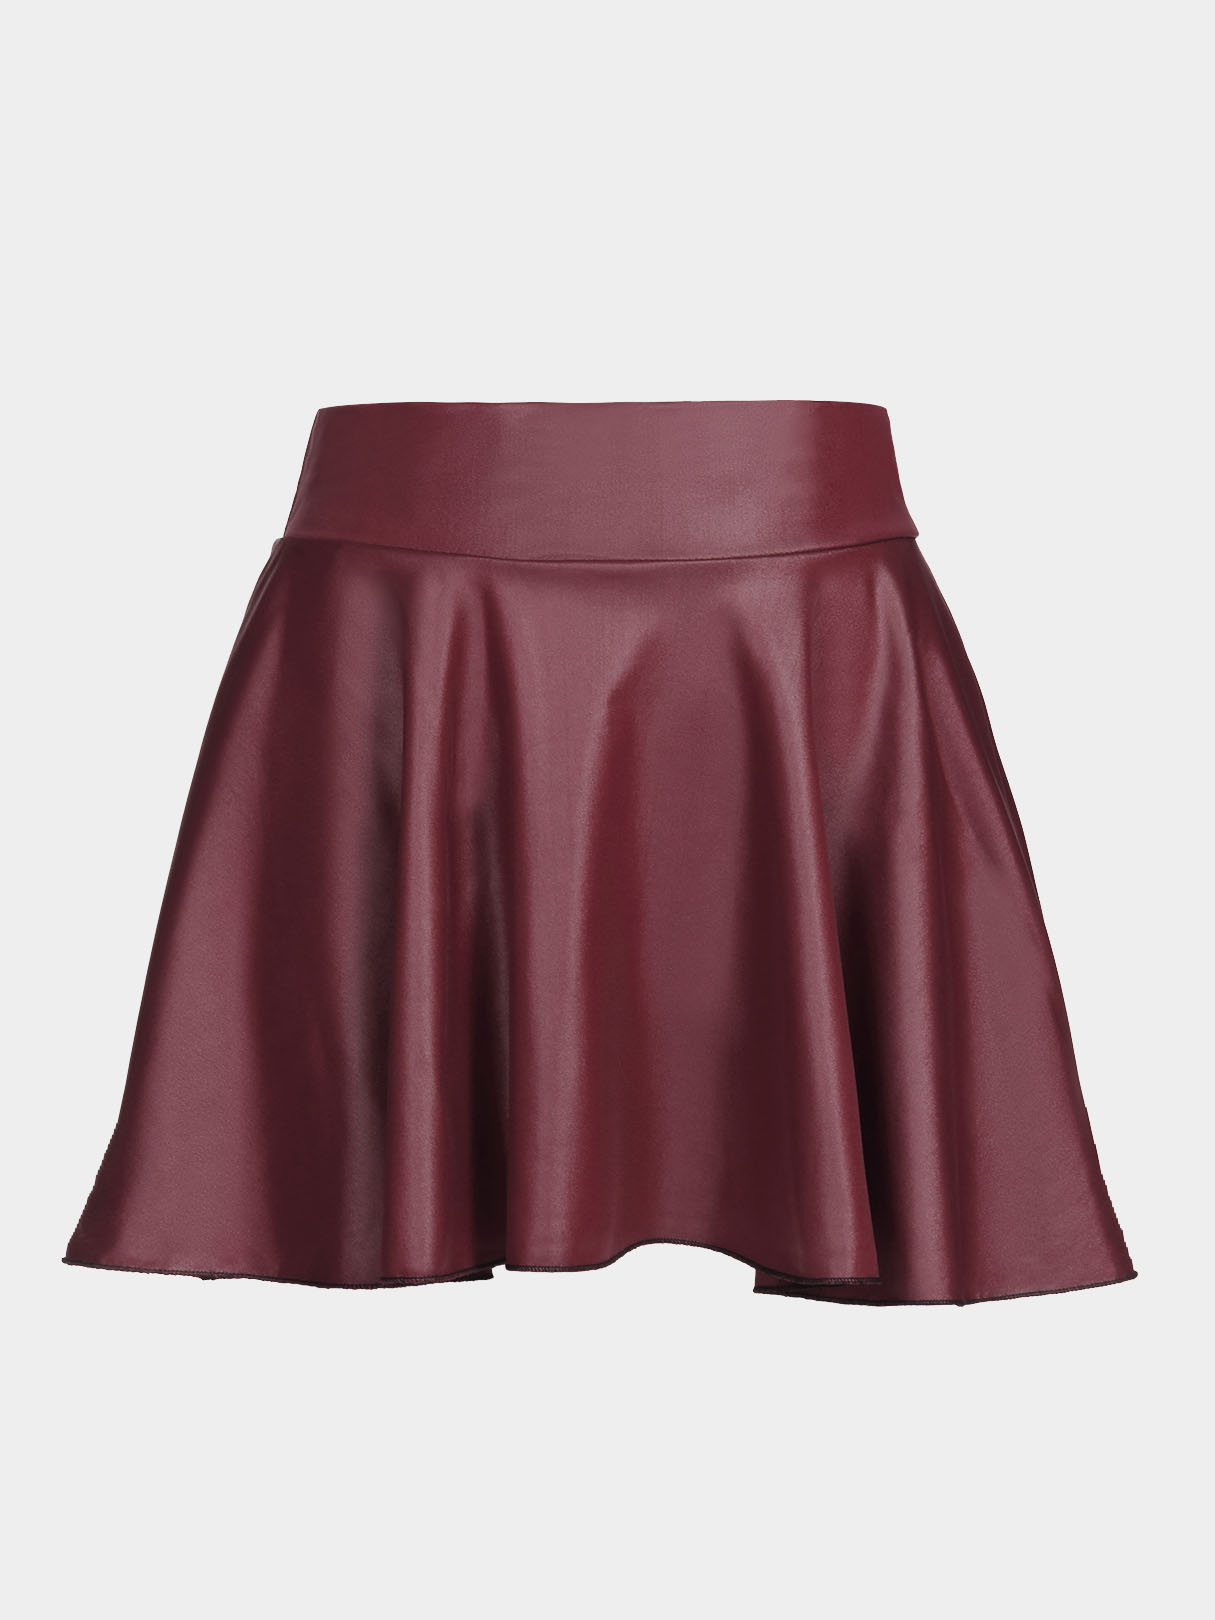 Dark Red Leather Look Skater Skirt With Back Elastic Band pleated high waist a line skater skirt